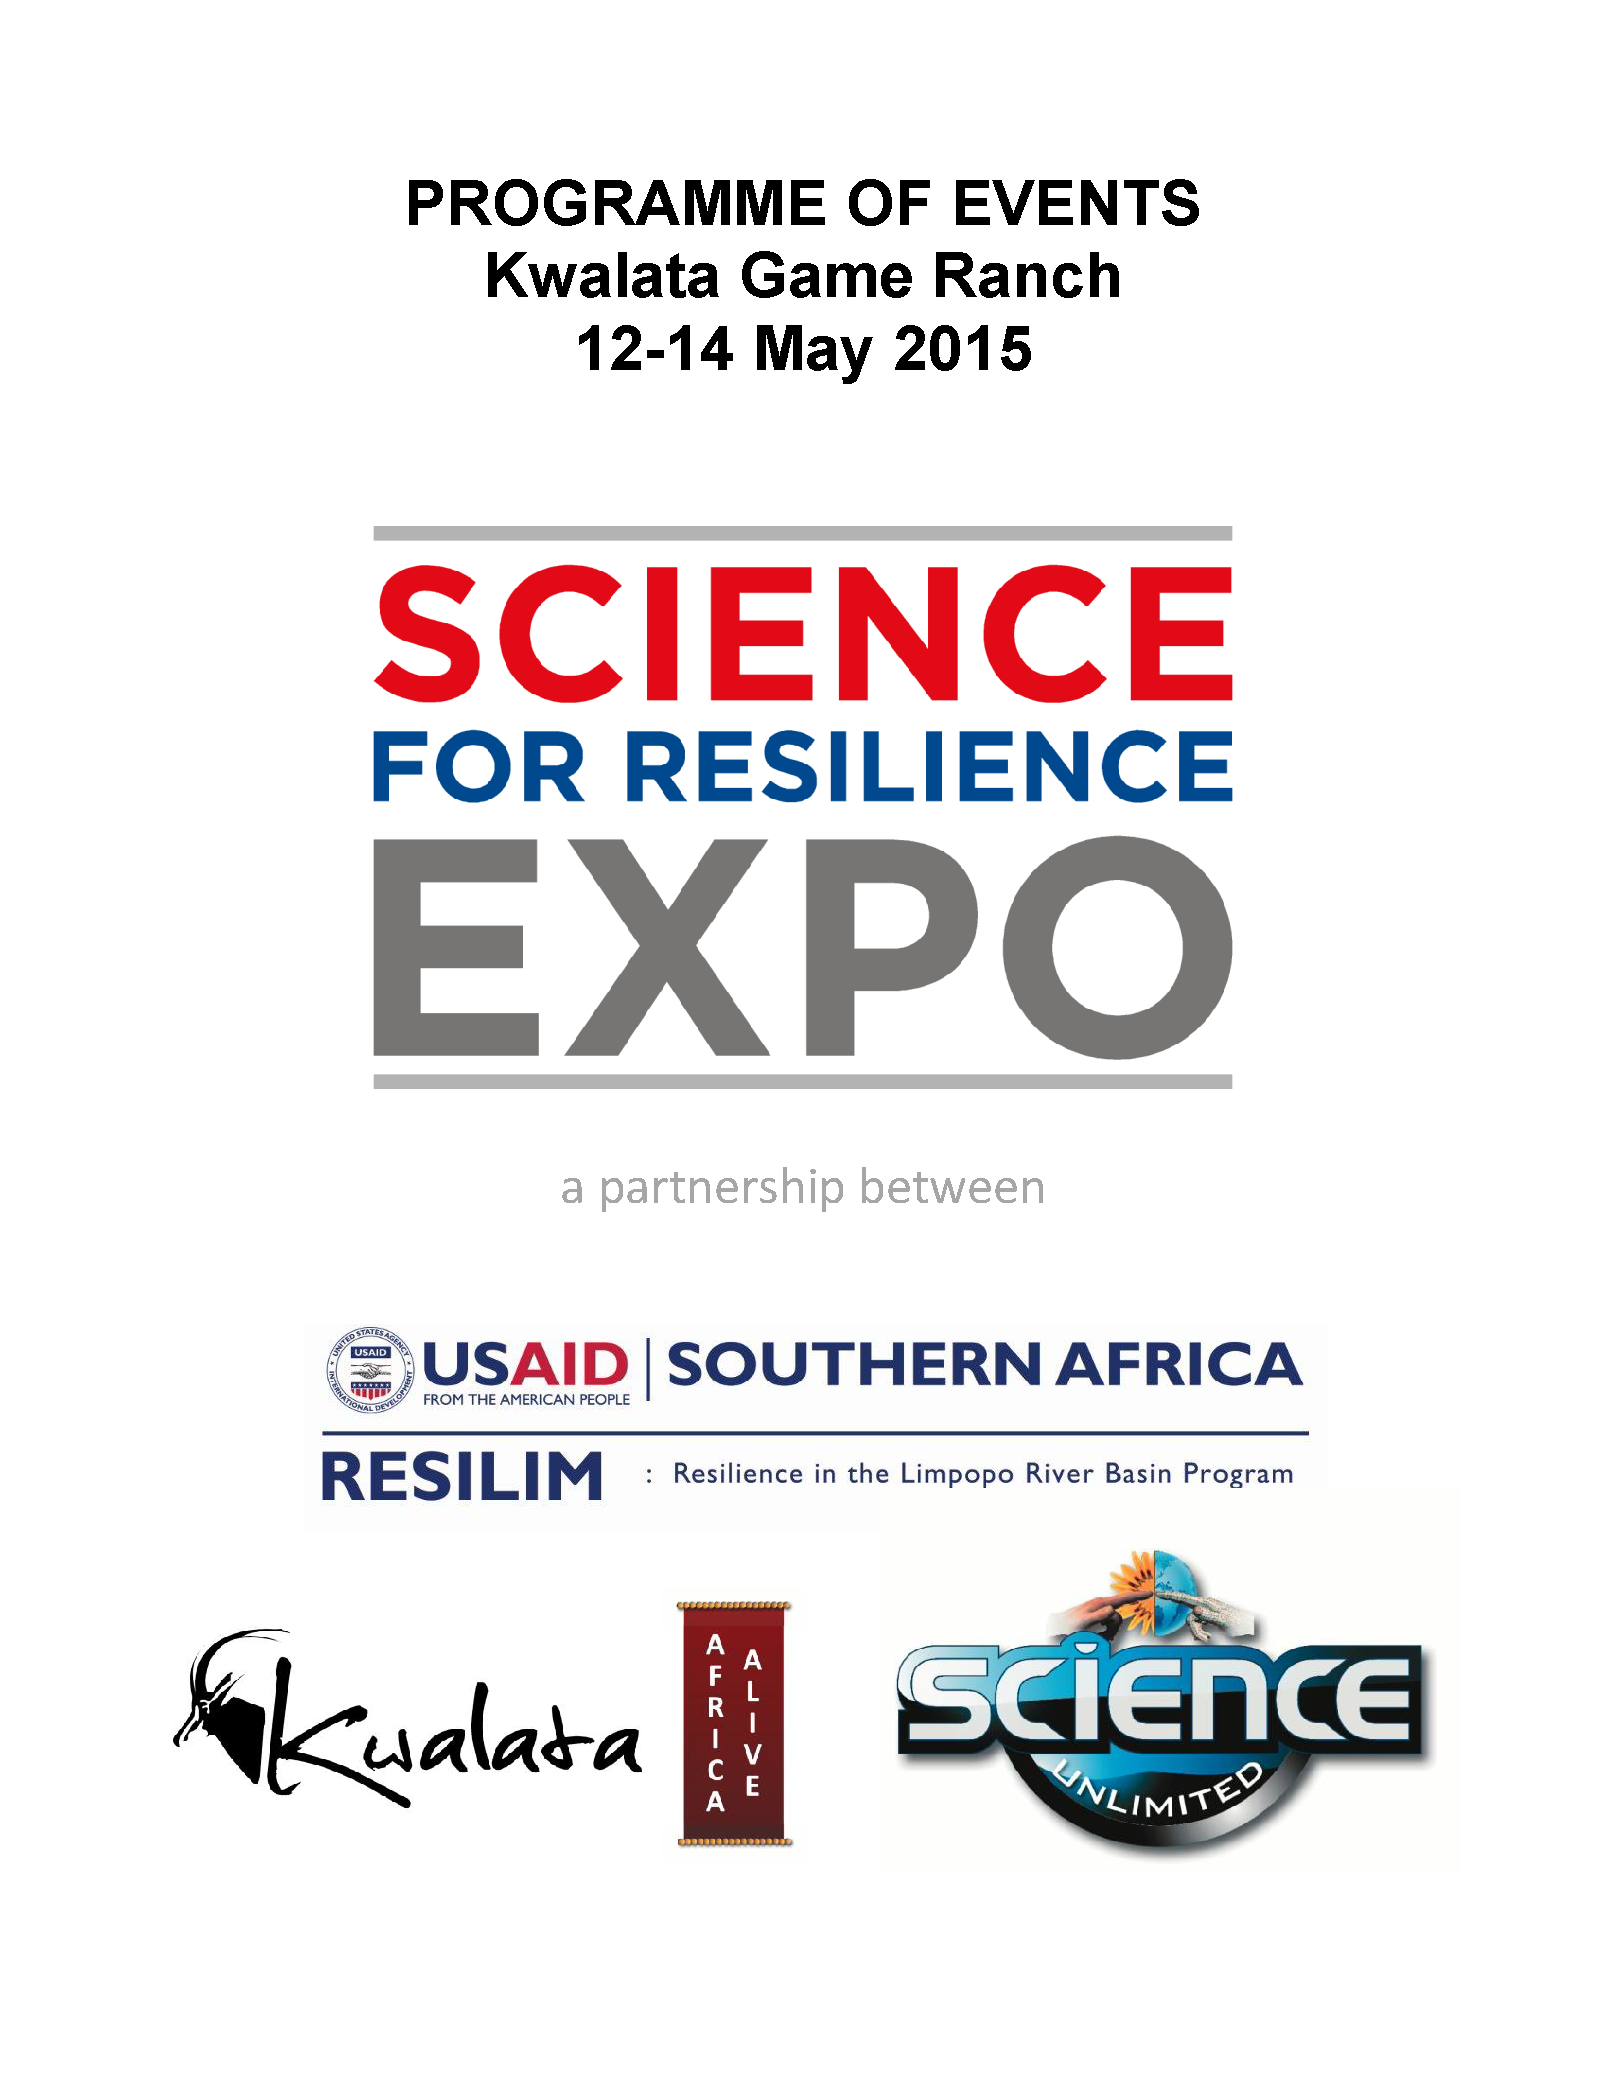 2015 Science for Resilience Expo